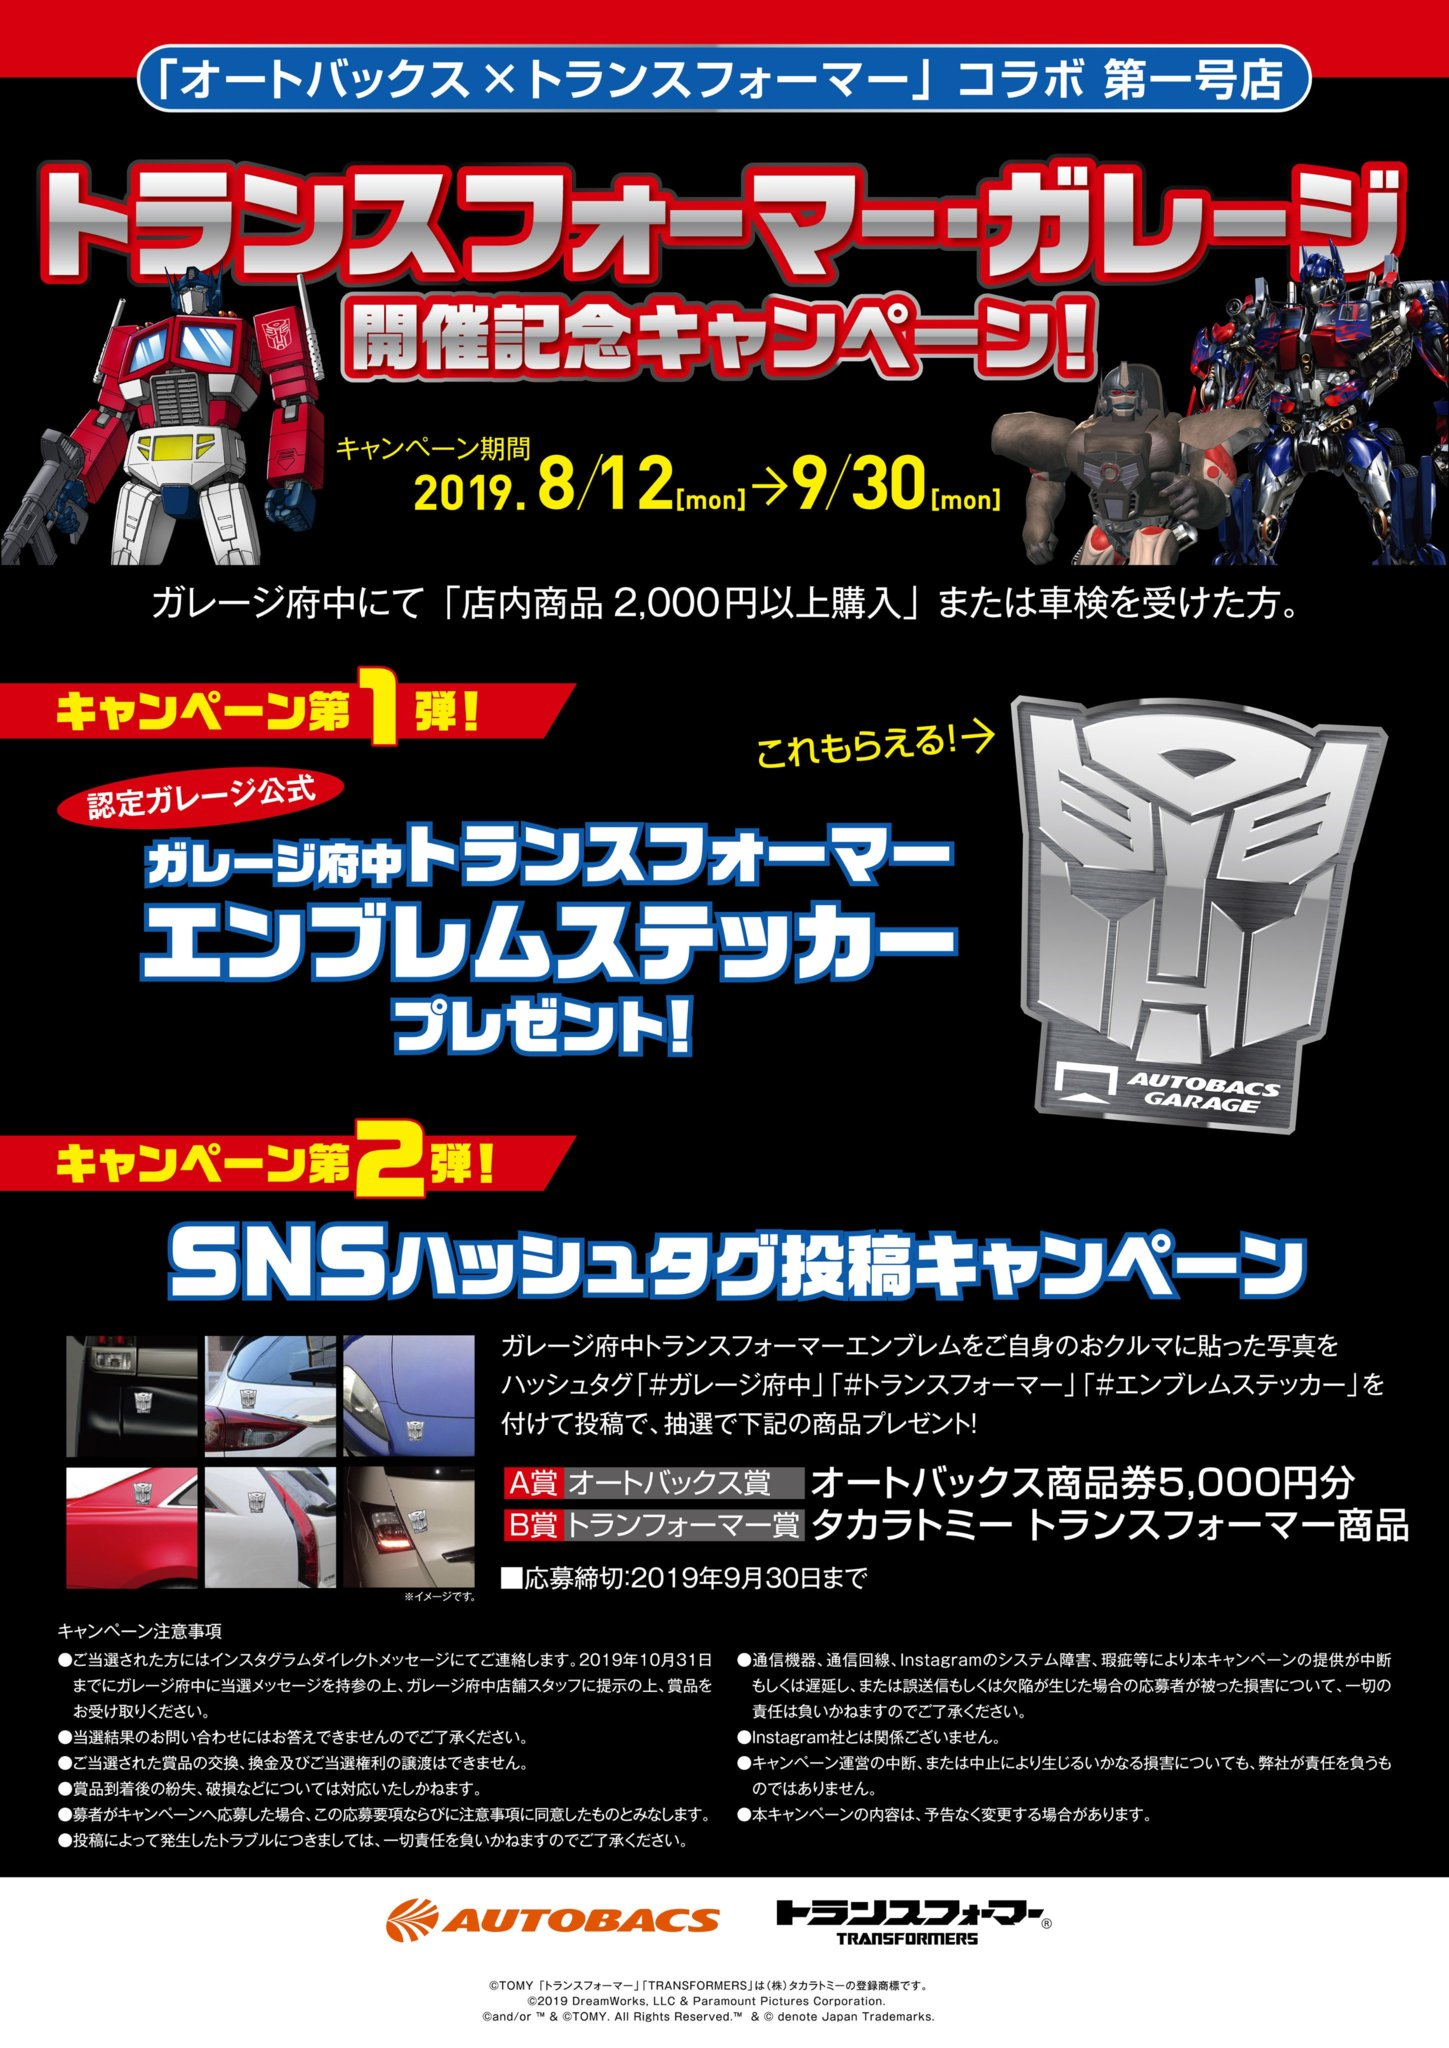 Transformers & AUTOBACS Collaboration-01.jpg